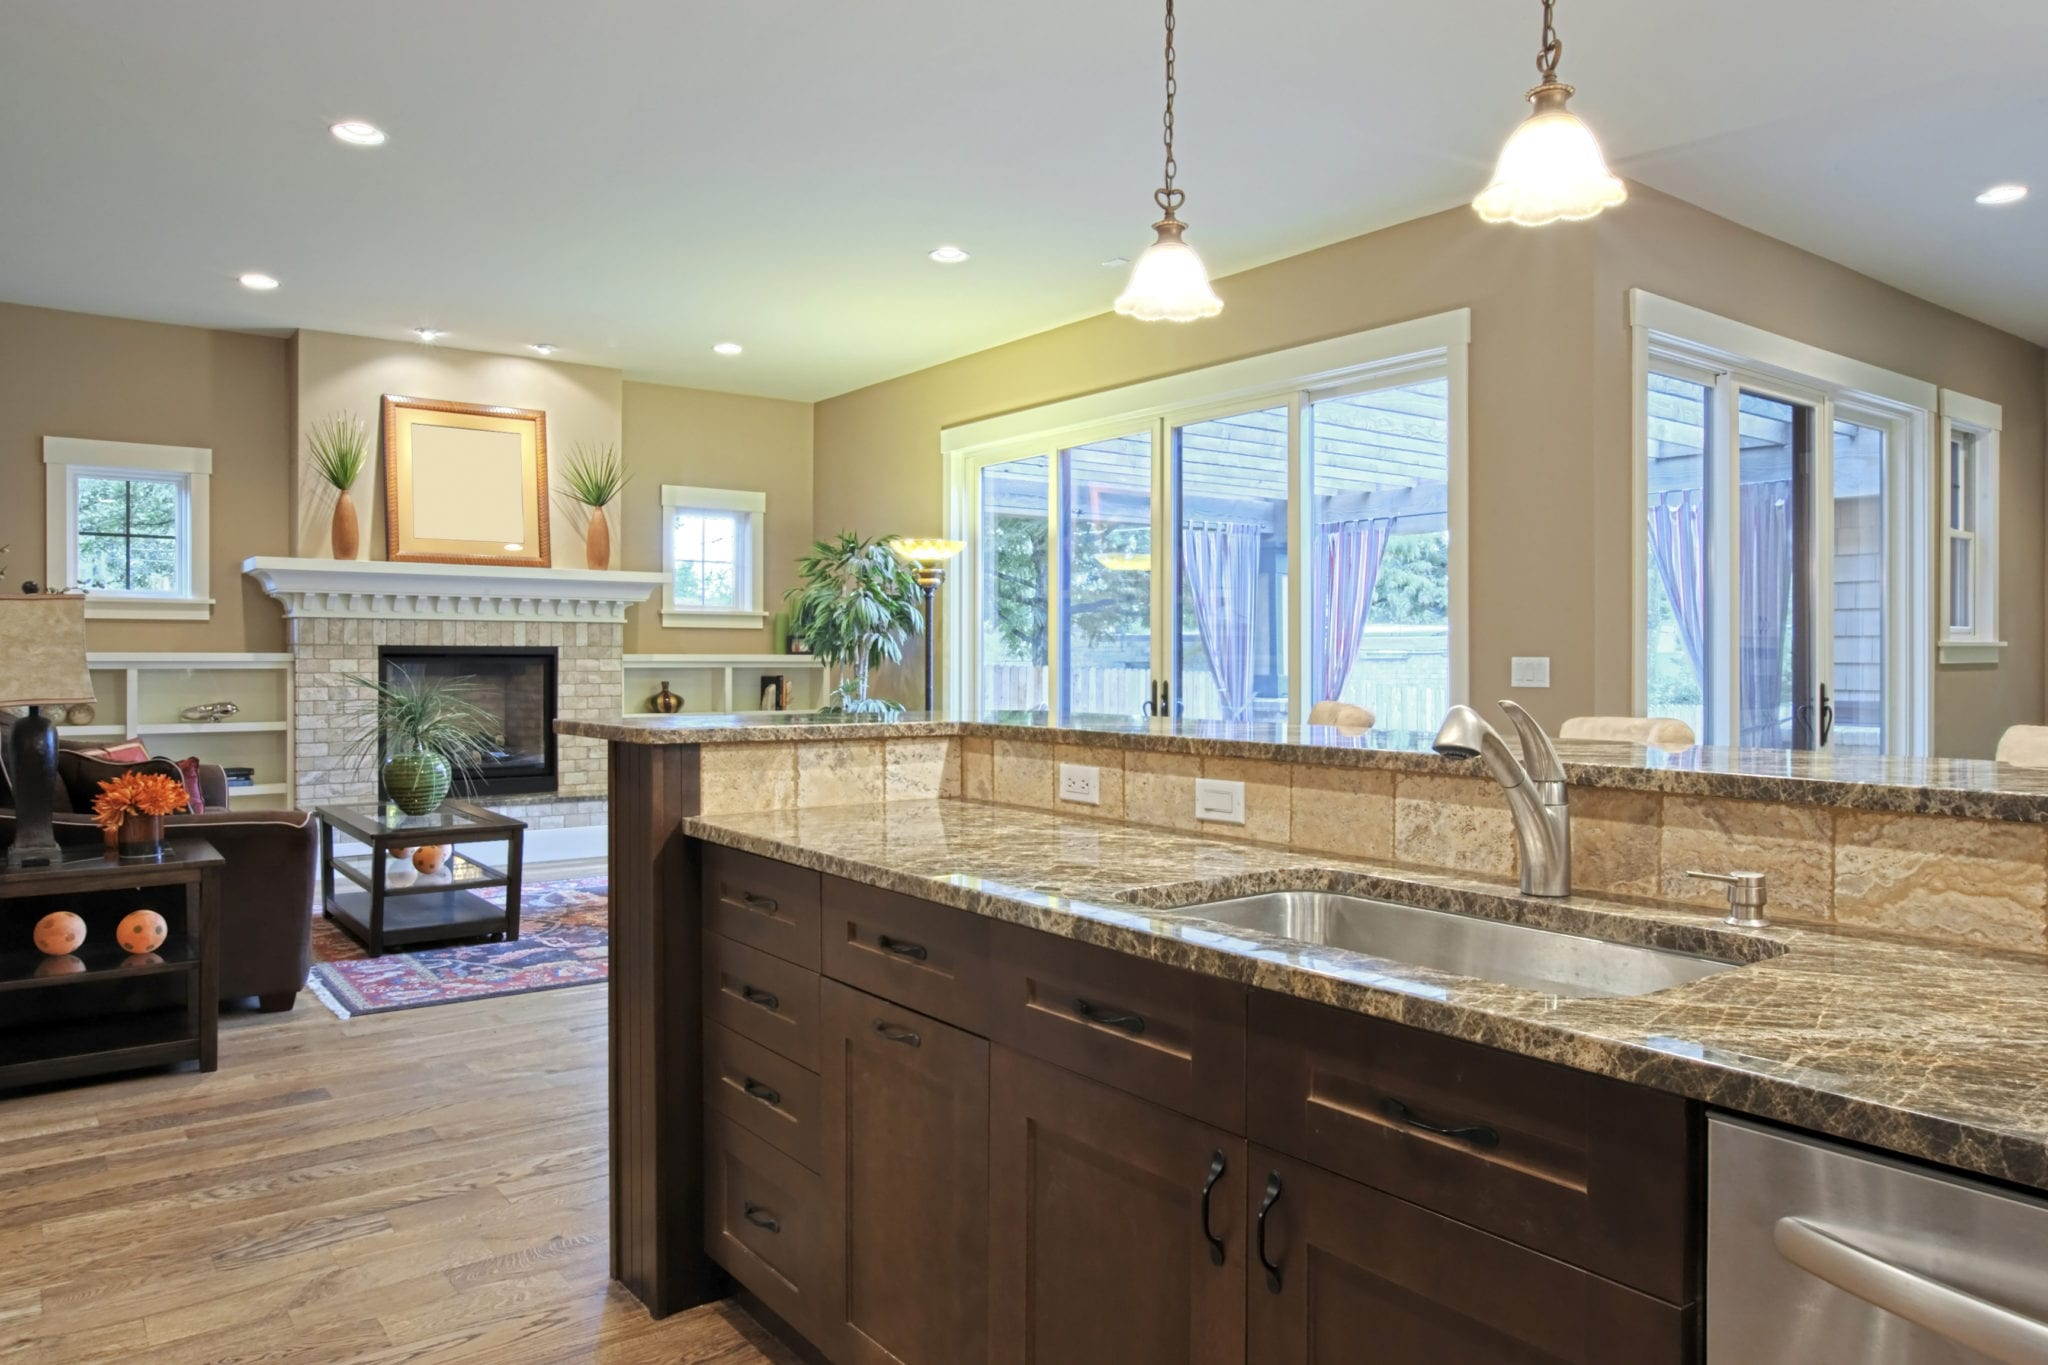 what are fixtures in real estate - timberland for sale florida